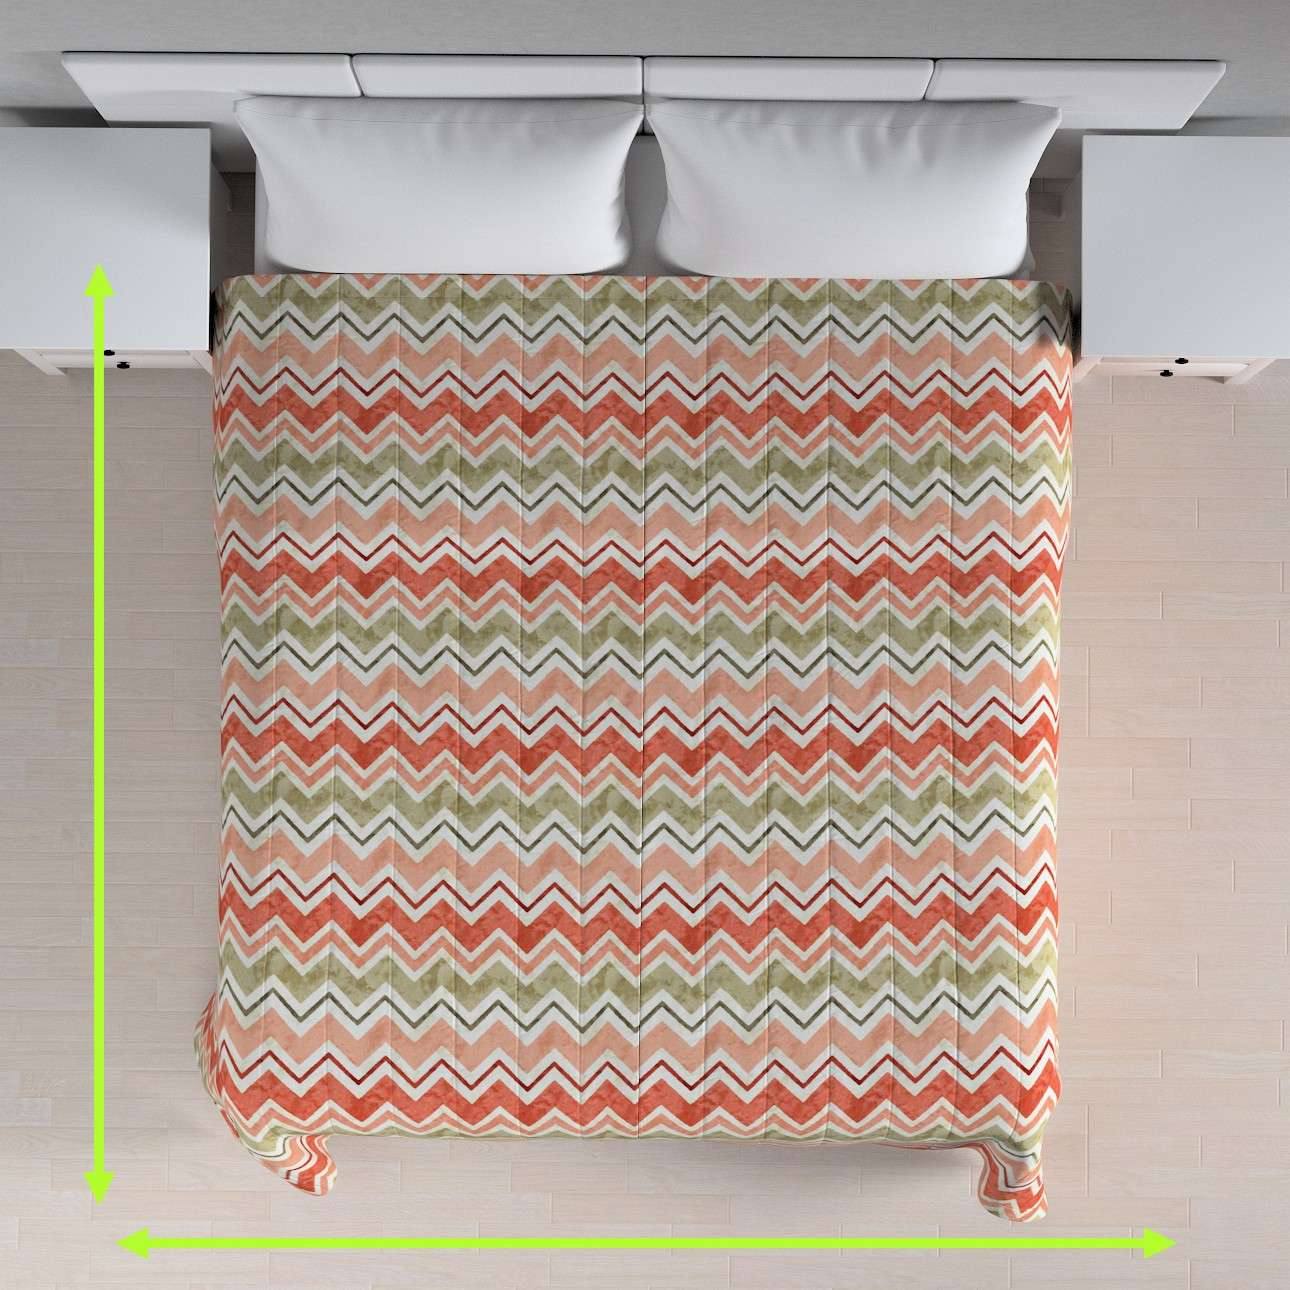 Quilted throw (vertical quilt pattern) in collection Acapulco, fabric: 141-40